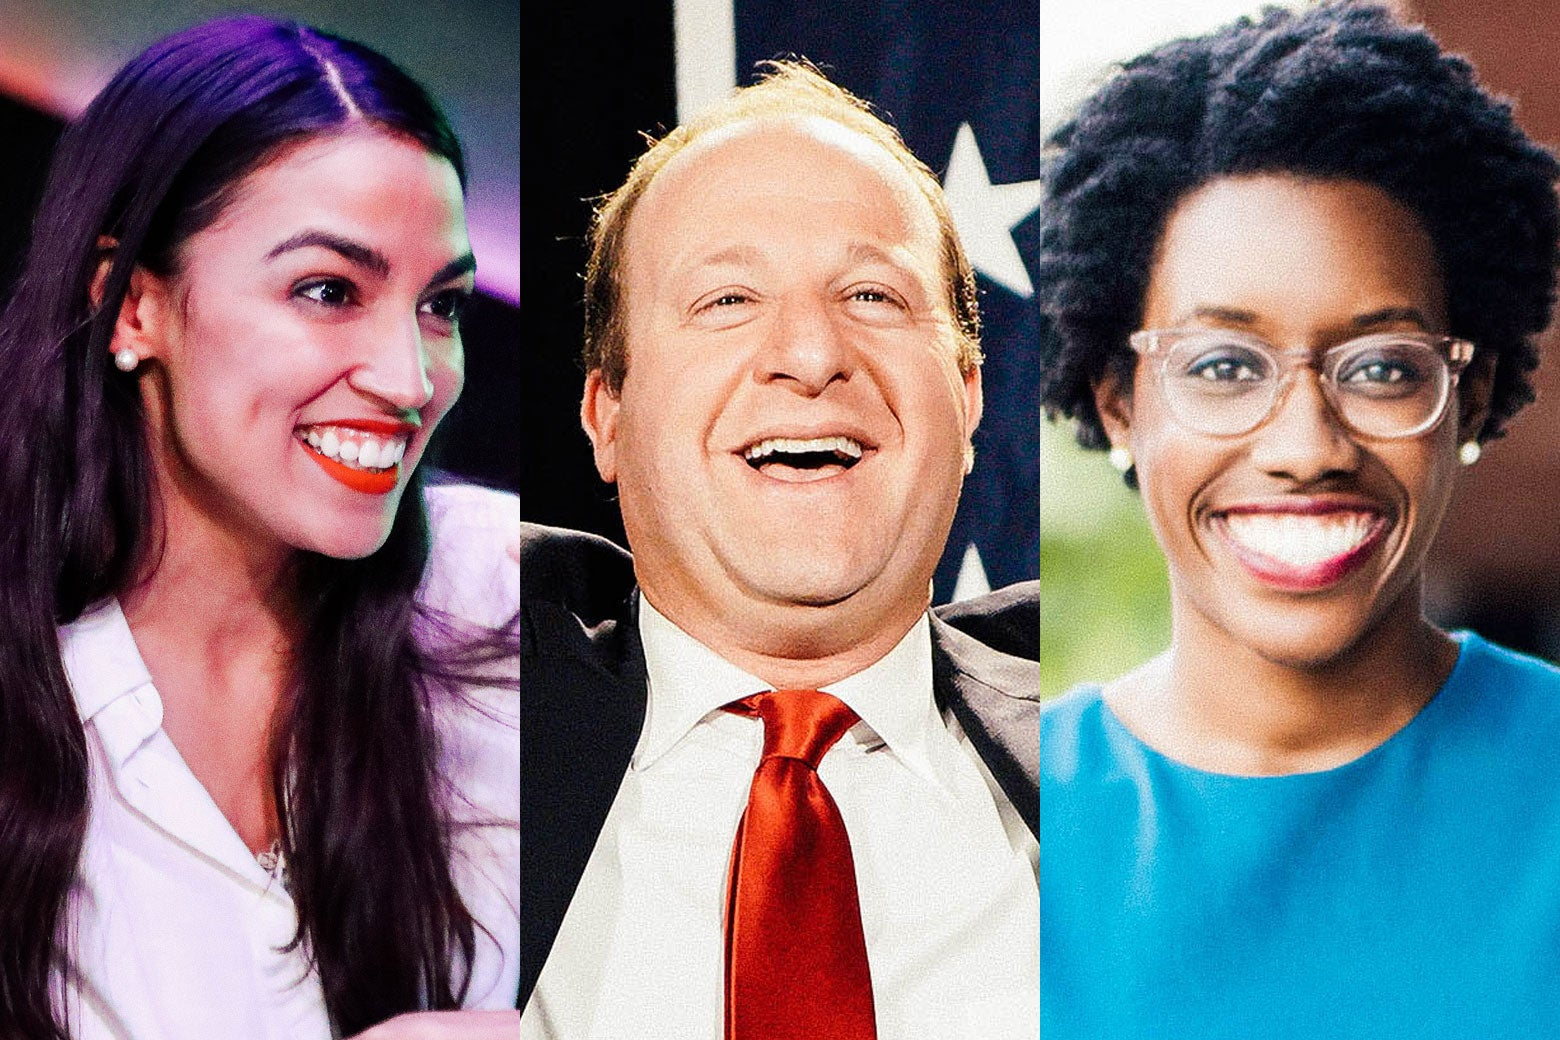 Alexandria Ocasio-Cortez, Jared Polis, and Lauren Underwood